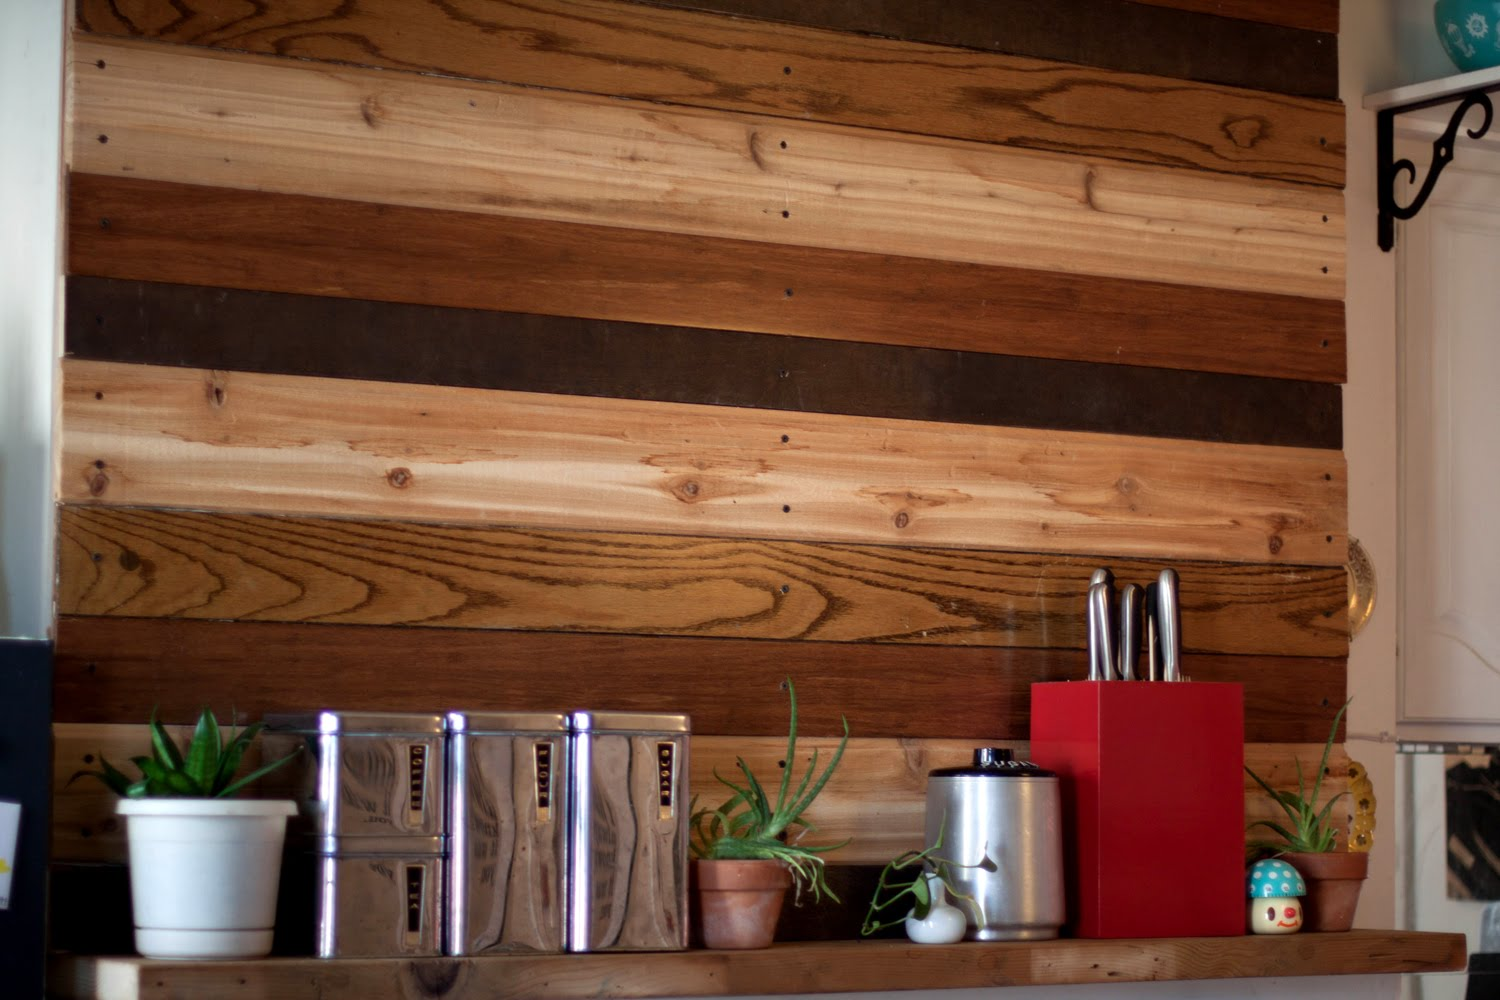 Wall Design In Wood : Nest reclaimed wood wall